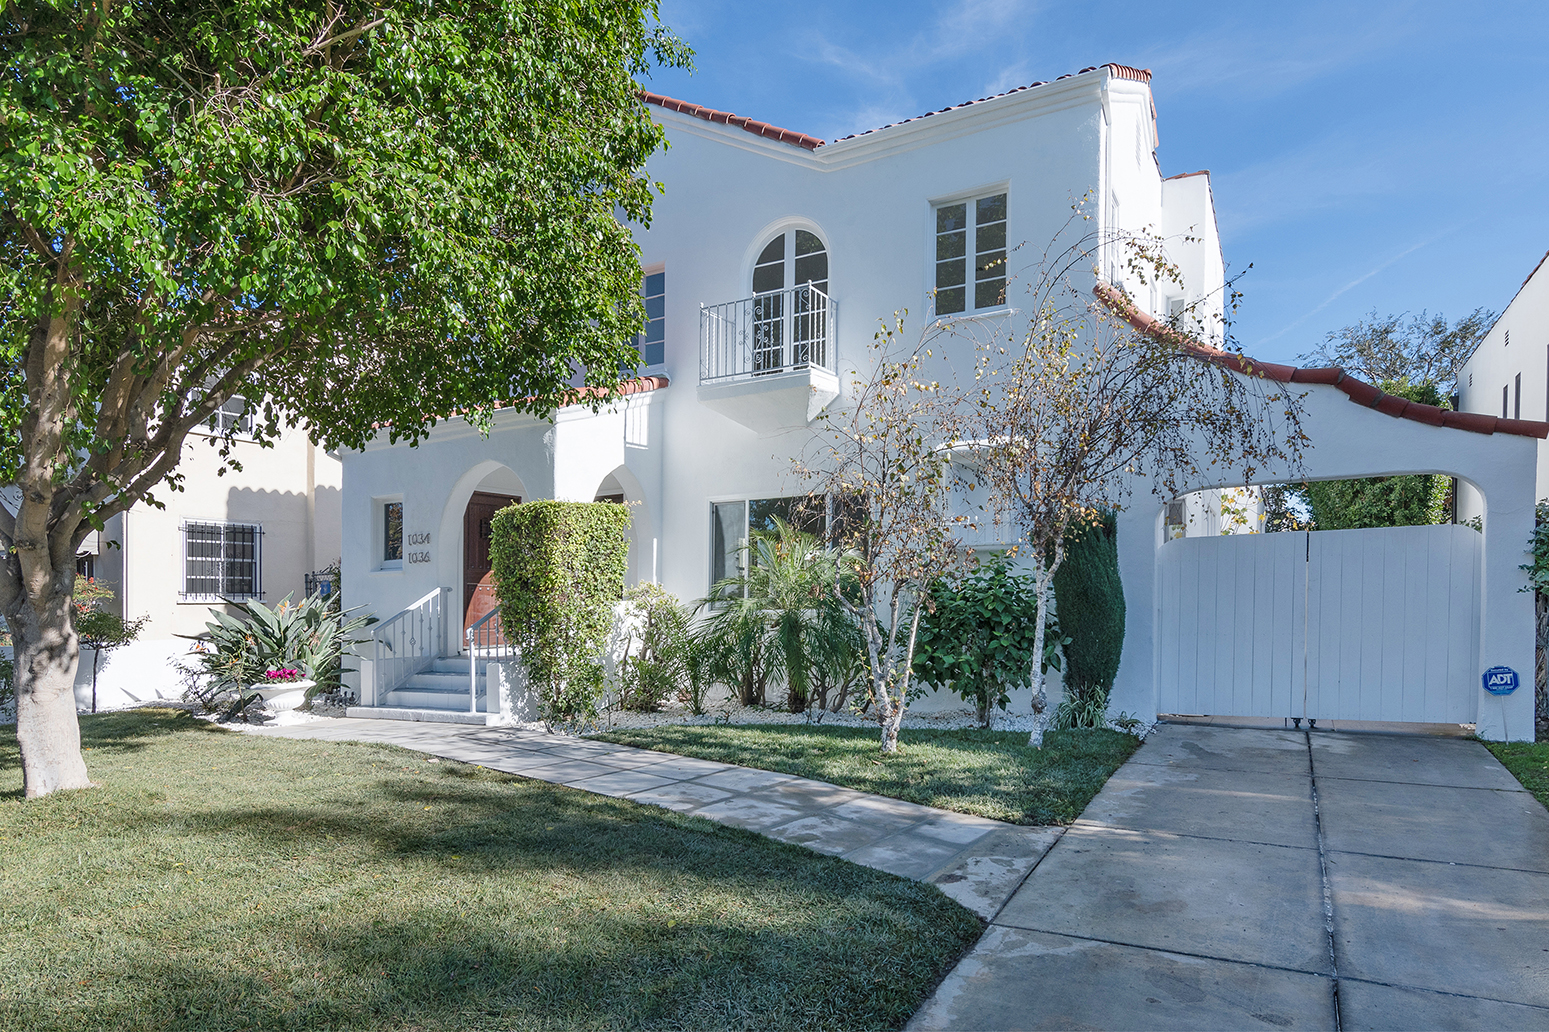 1034 Hi Point St. Los Angeles 90035 - 6 Bedroom | 6 Bath | 3242 sqft | 6506 sqft lot              Listed at $2,600,000Beautiful Spanish duplex with a detached in-law suite located in the highly coveted Carthay Square HPOZ. Complete top-to-bottom remodel in 2019. Fully occupied with newly secured tenants. Each unit has been updated with: new floors, new appliances, new electrical, new plumbing, new bathroom tile and finishes, new windows. Nothing was left untouched. Bottom unit is 3 bed 3 bath, top unit is 2 bed 2 bath, detached in-law suite is 1 bed 1 bath and the in-law suite is over a 4-car garage (1-2bay, 1-1bay and 1 carport) Garages are currently rented as storage. Do not miss out on this beautiful opportunity to own a great income property in a great location!More info and photos